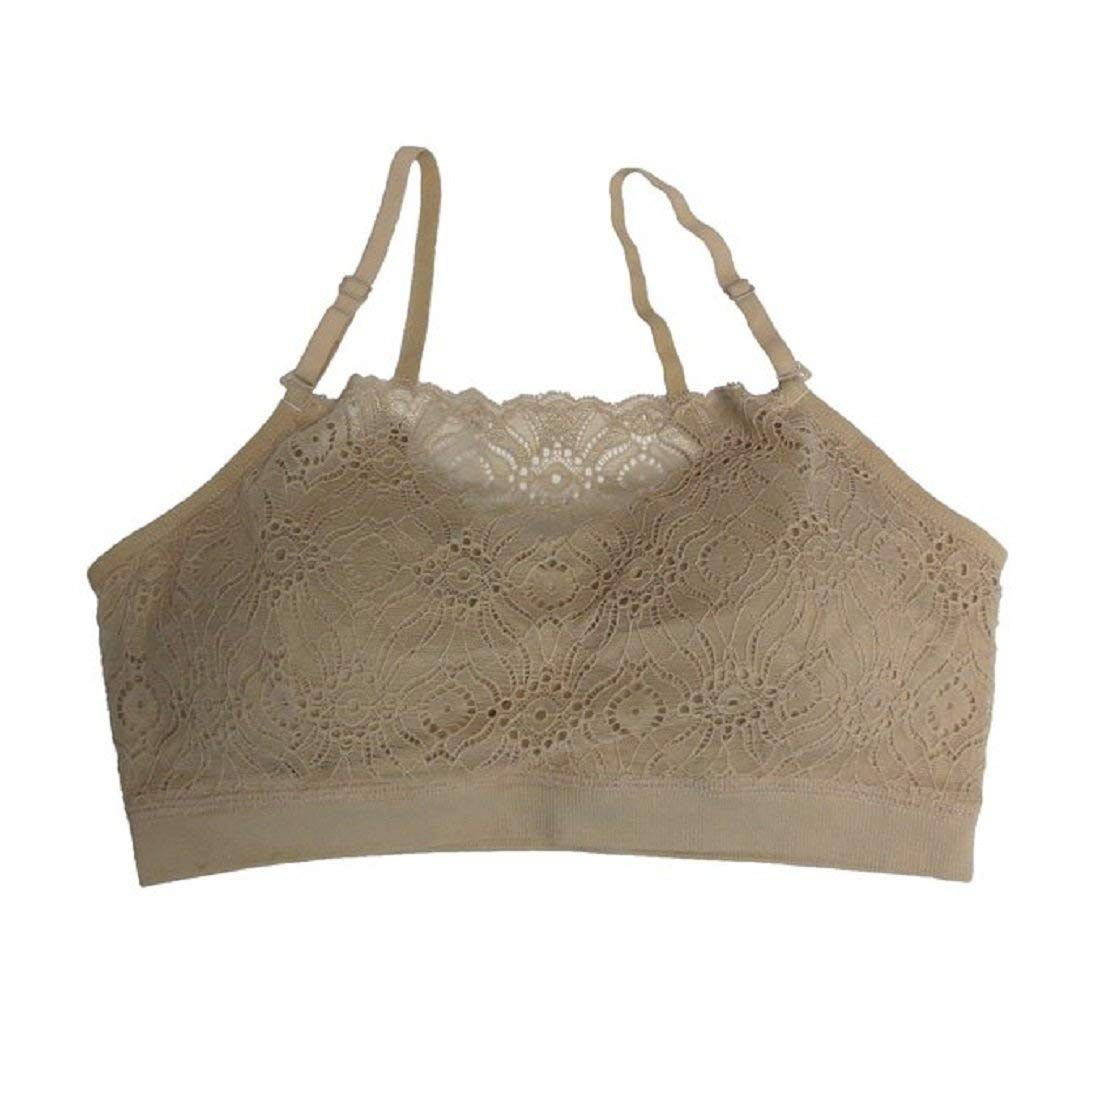 d1a59ad8857 Get Quotations · Coobie Women s Lace Coverage Wire-Free Bra One Size - 9050  (Light Nude)